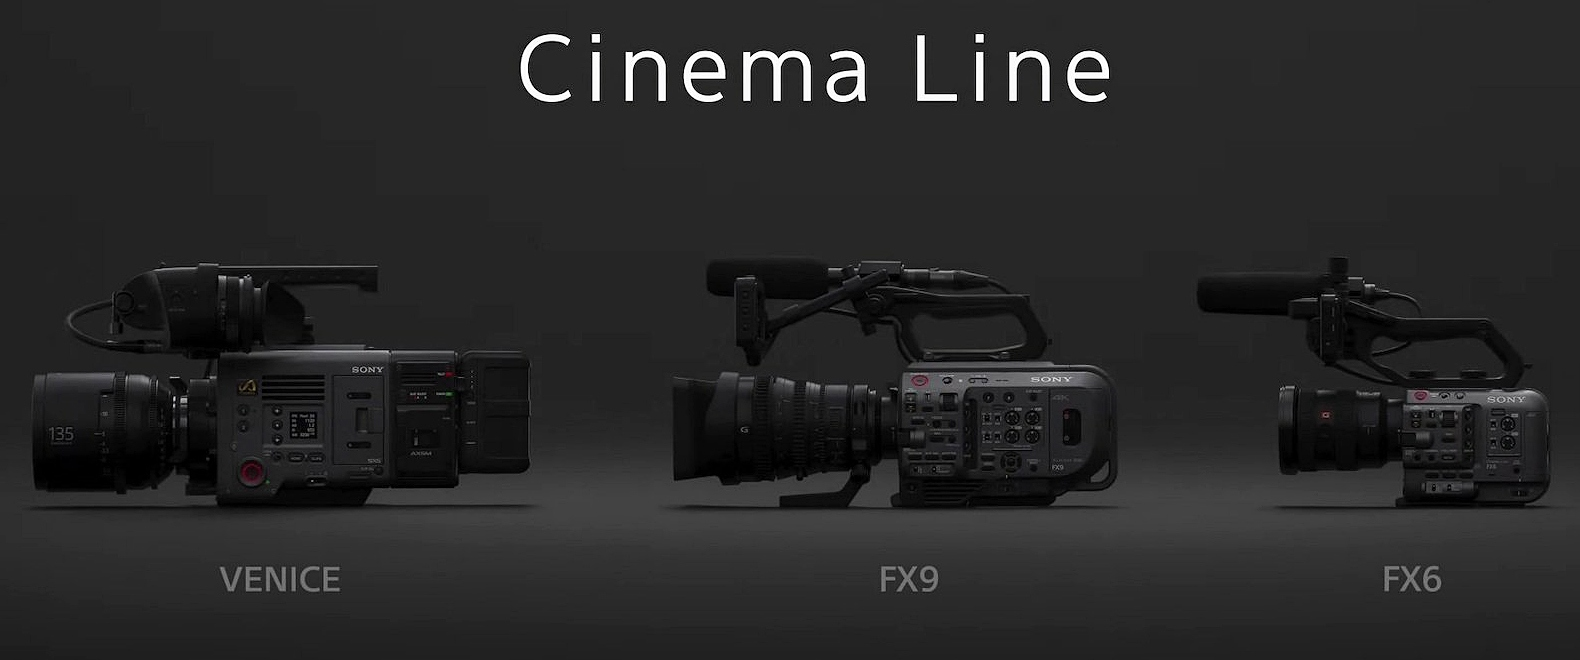 Alpha Universe New Sony Cinema Line